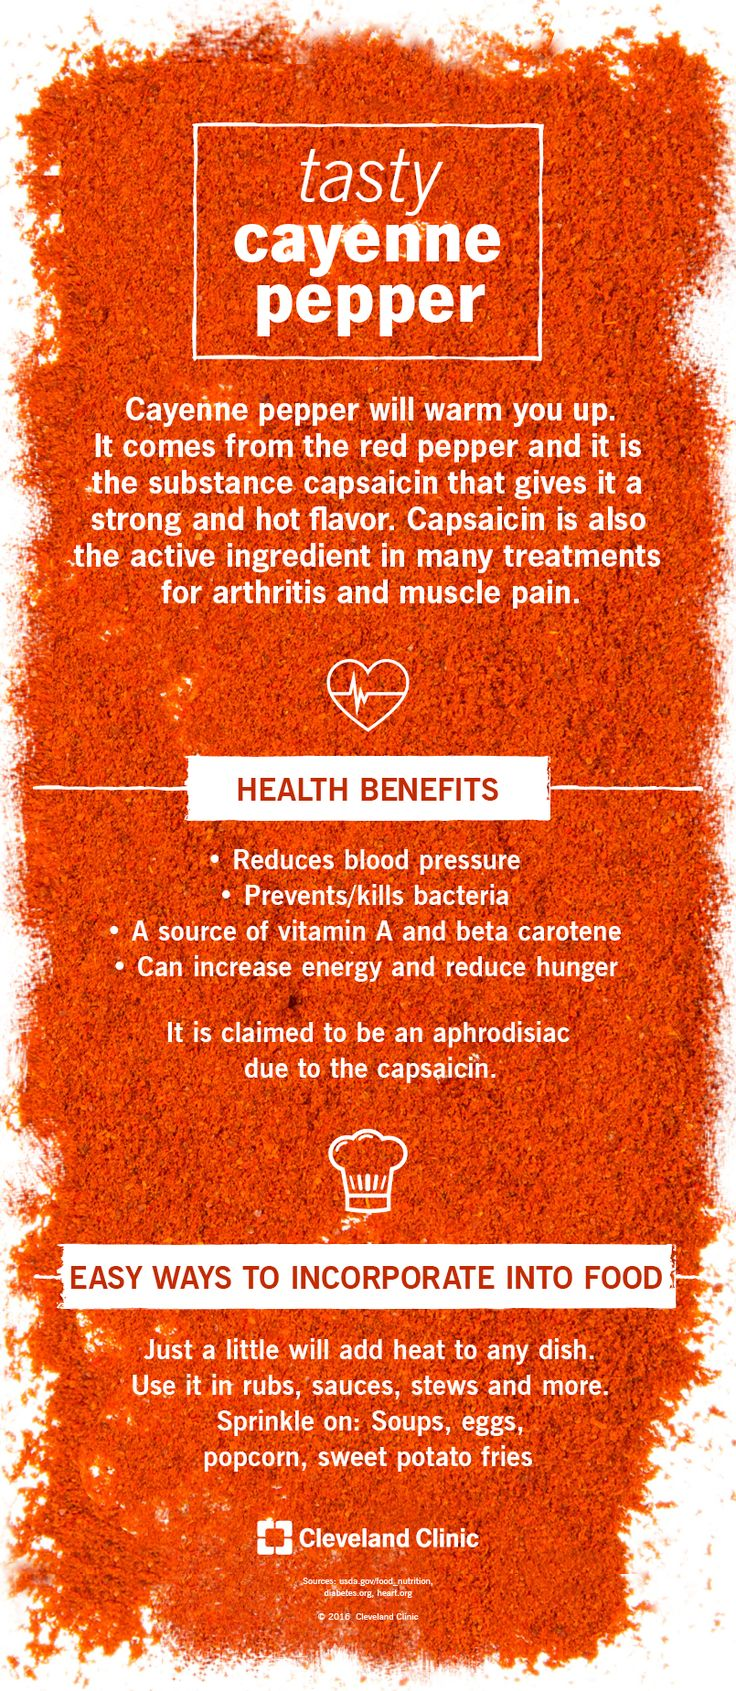 Add Some Kick with Cayenne (Infographic)